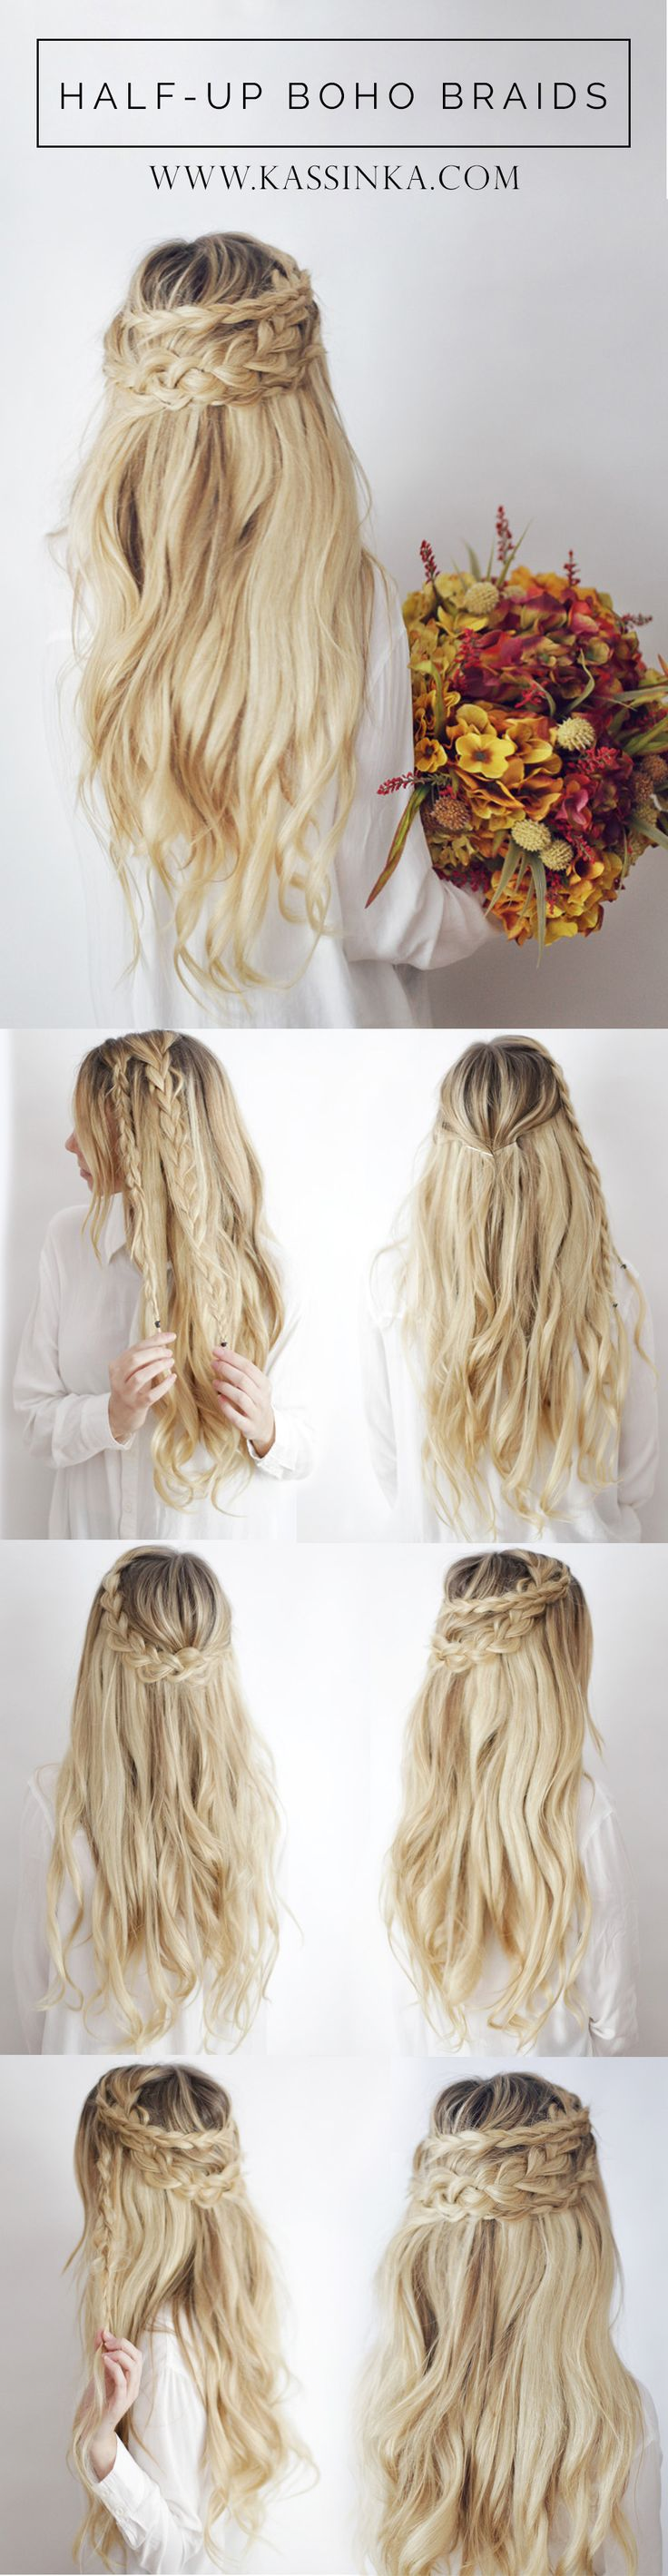 623 best Bohemian Hair and Beauty images on Pinterest